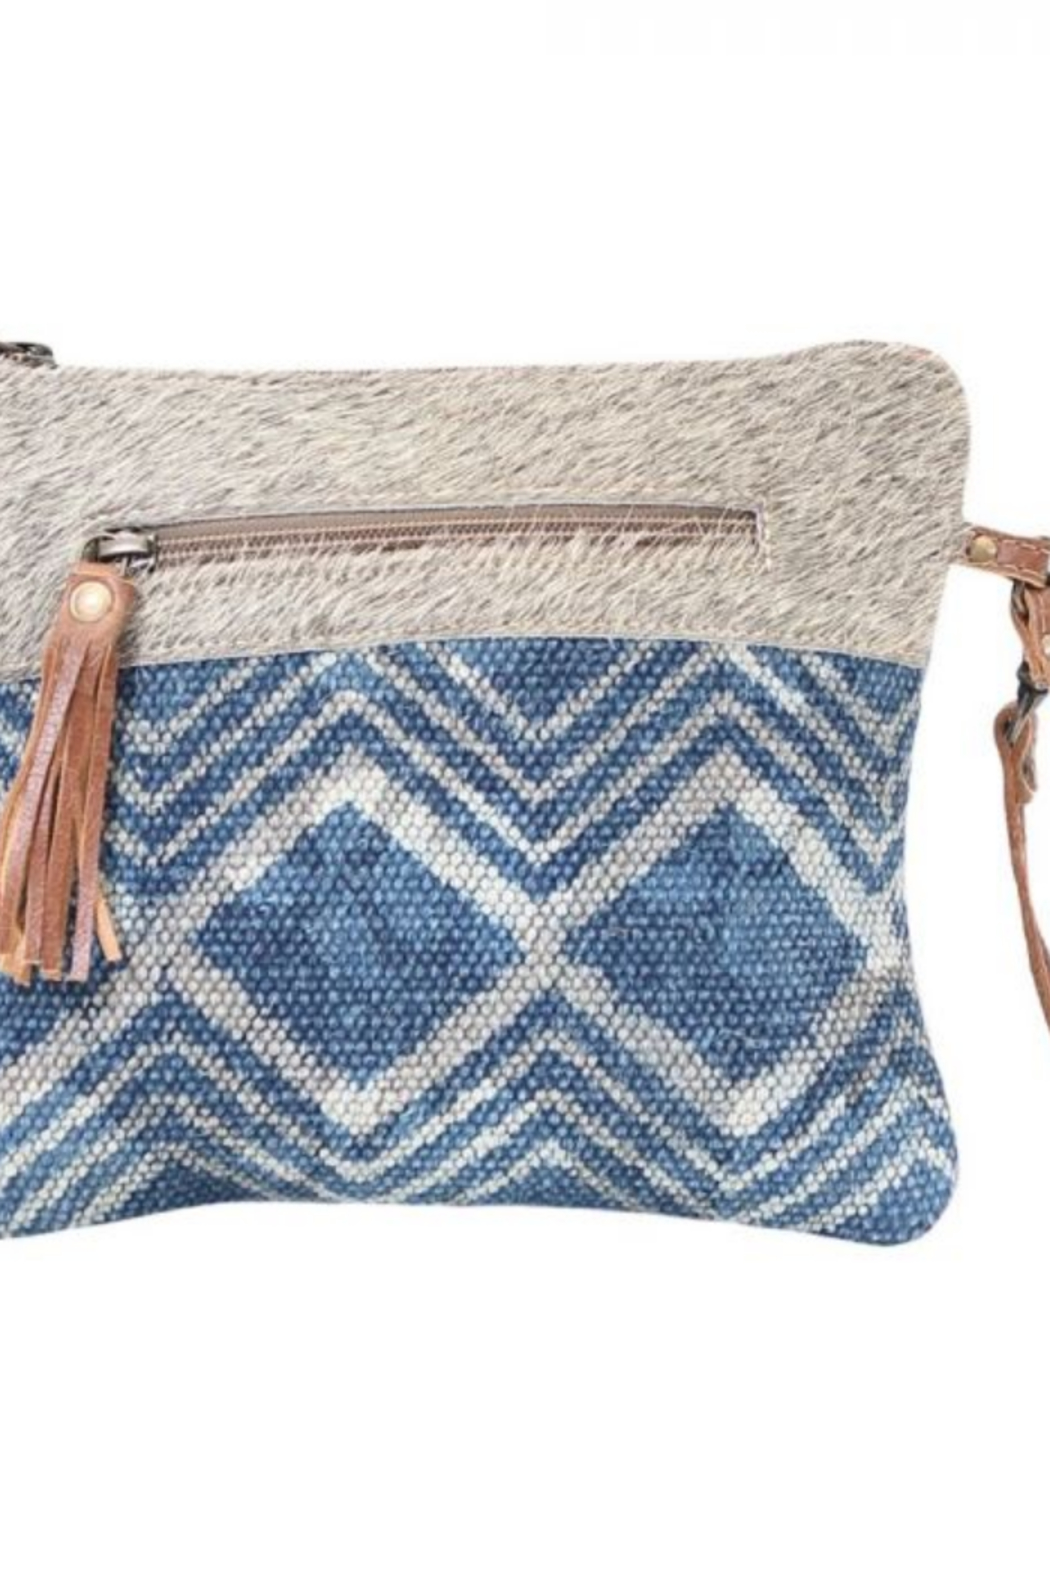 Myra Bags Myra Teal Pouch 1601 - Front Cropped Image